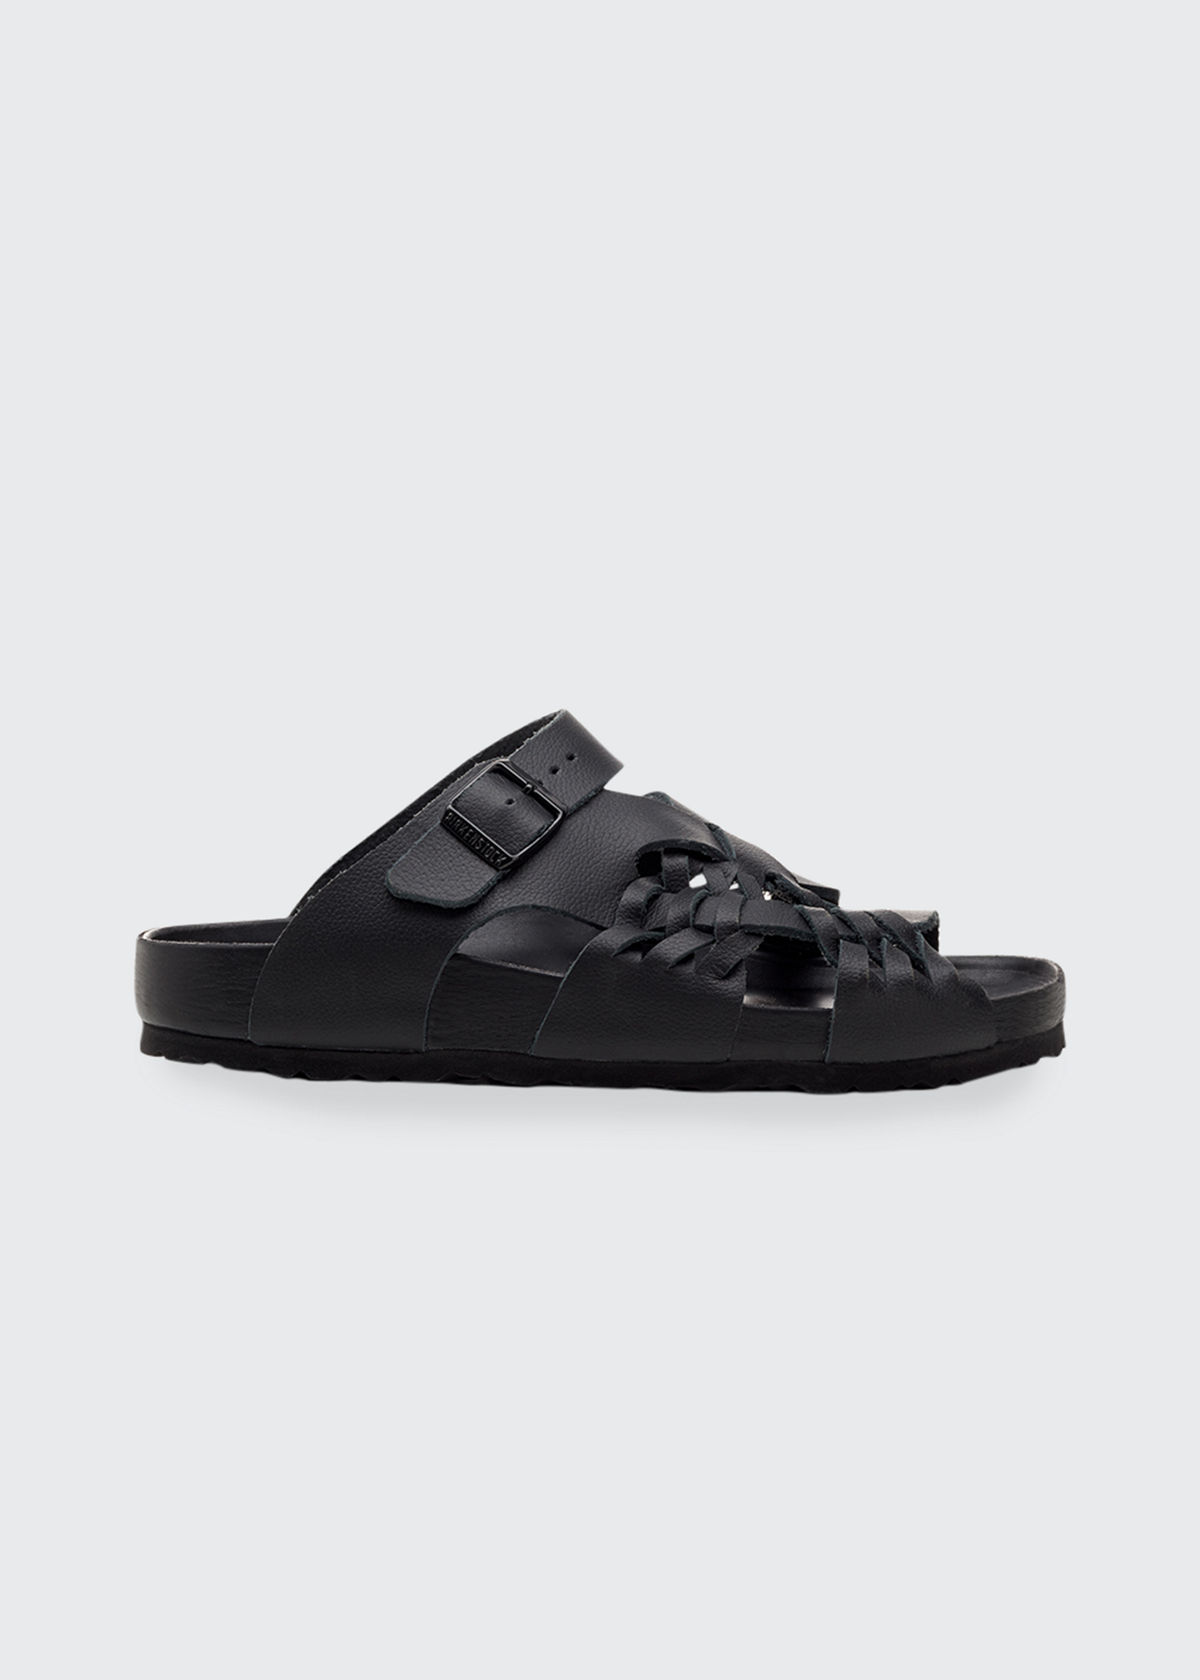 Birkenstock Shoes TALLAHASSEE WOVEN LEATHER SLIDE SANDALS, BLACK